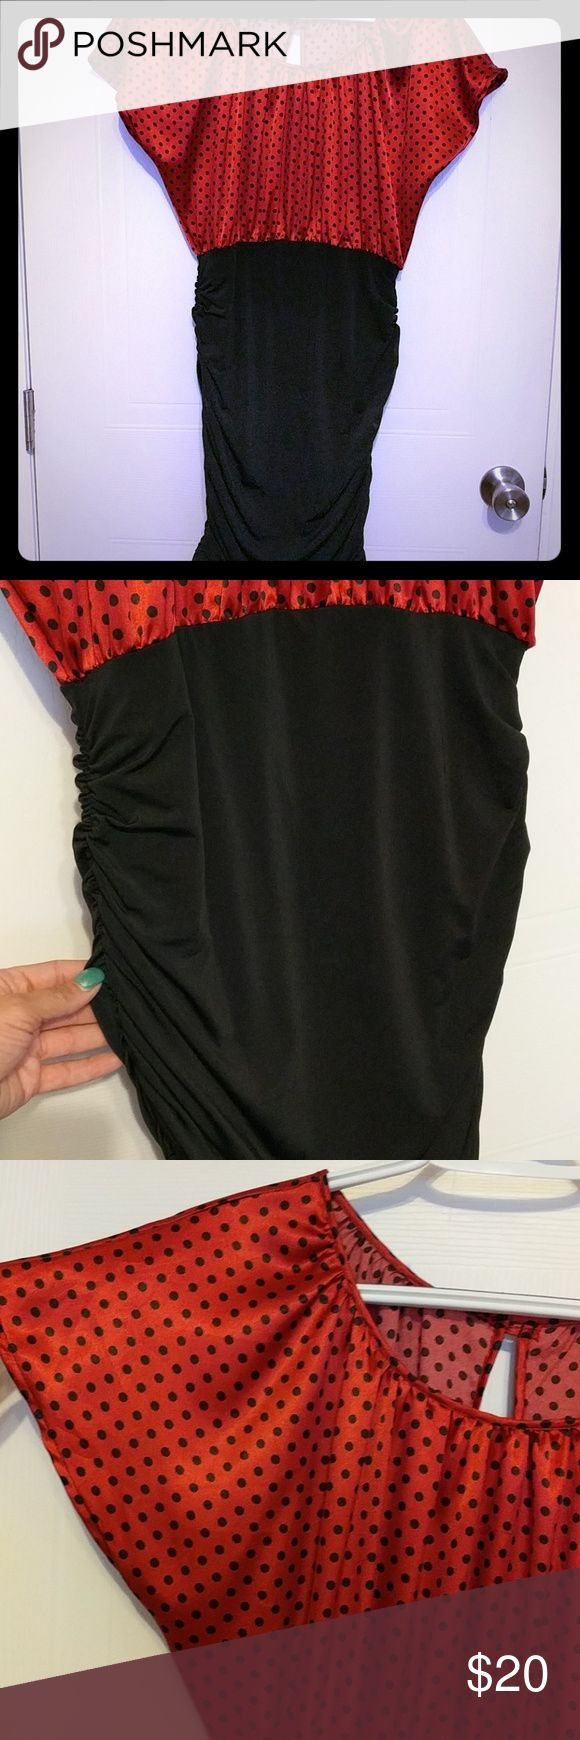 Polka dot club dress Black n red polka dot dress,  rouched mini skirt, empire waist.  Can be worn with a denim jacket to dress down or with heels for a night out.  Can be worn with flats or heels or boots. Dresses Mini